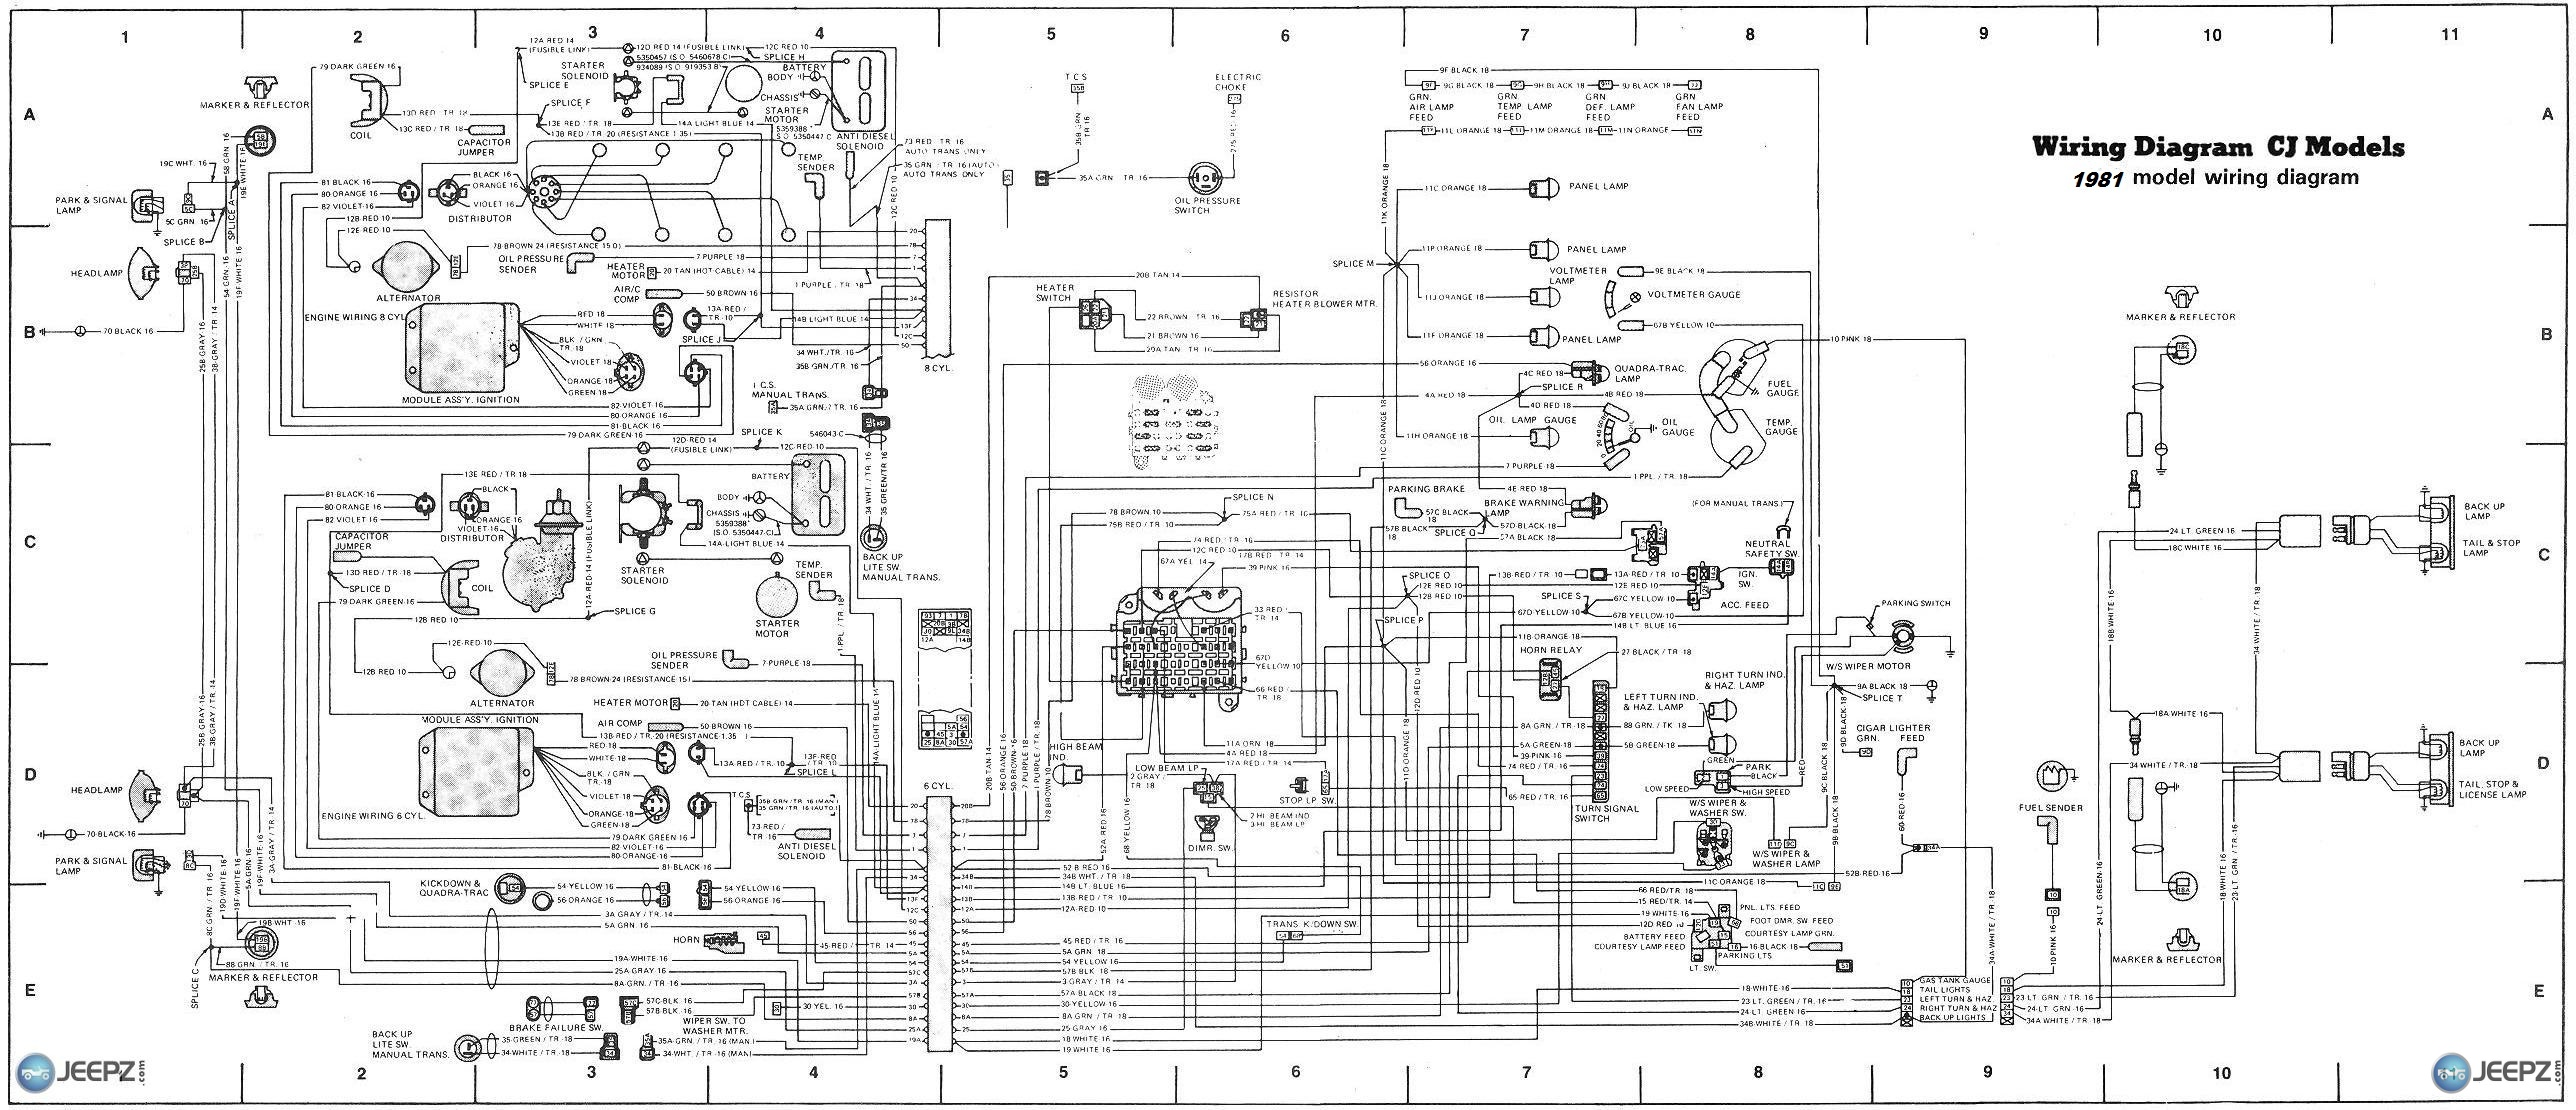 1980 jeep cj7 wiring diagram auto electrical wiring diagram 1980 jeep cj7  ignition switch wiring diagram